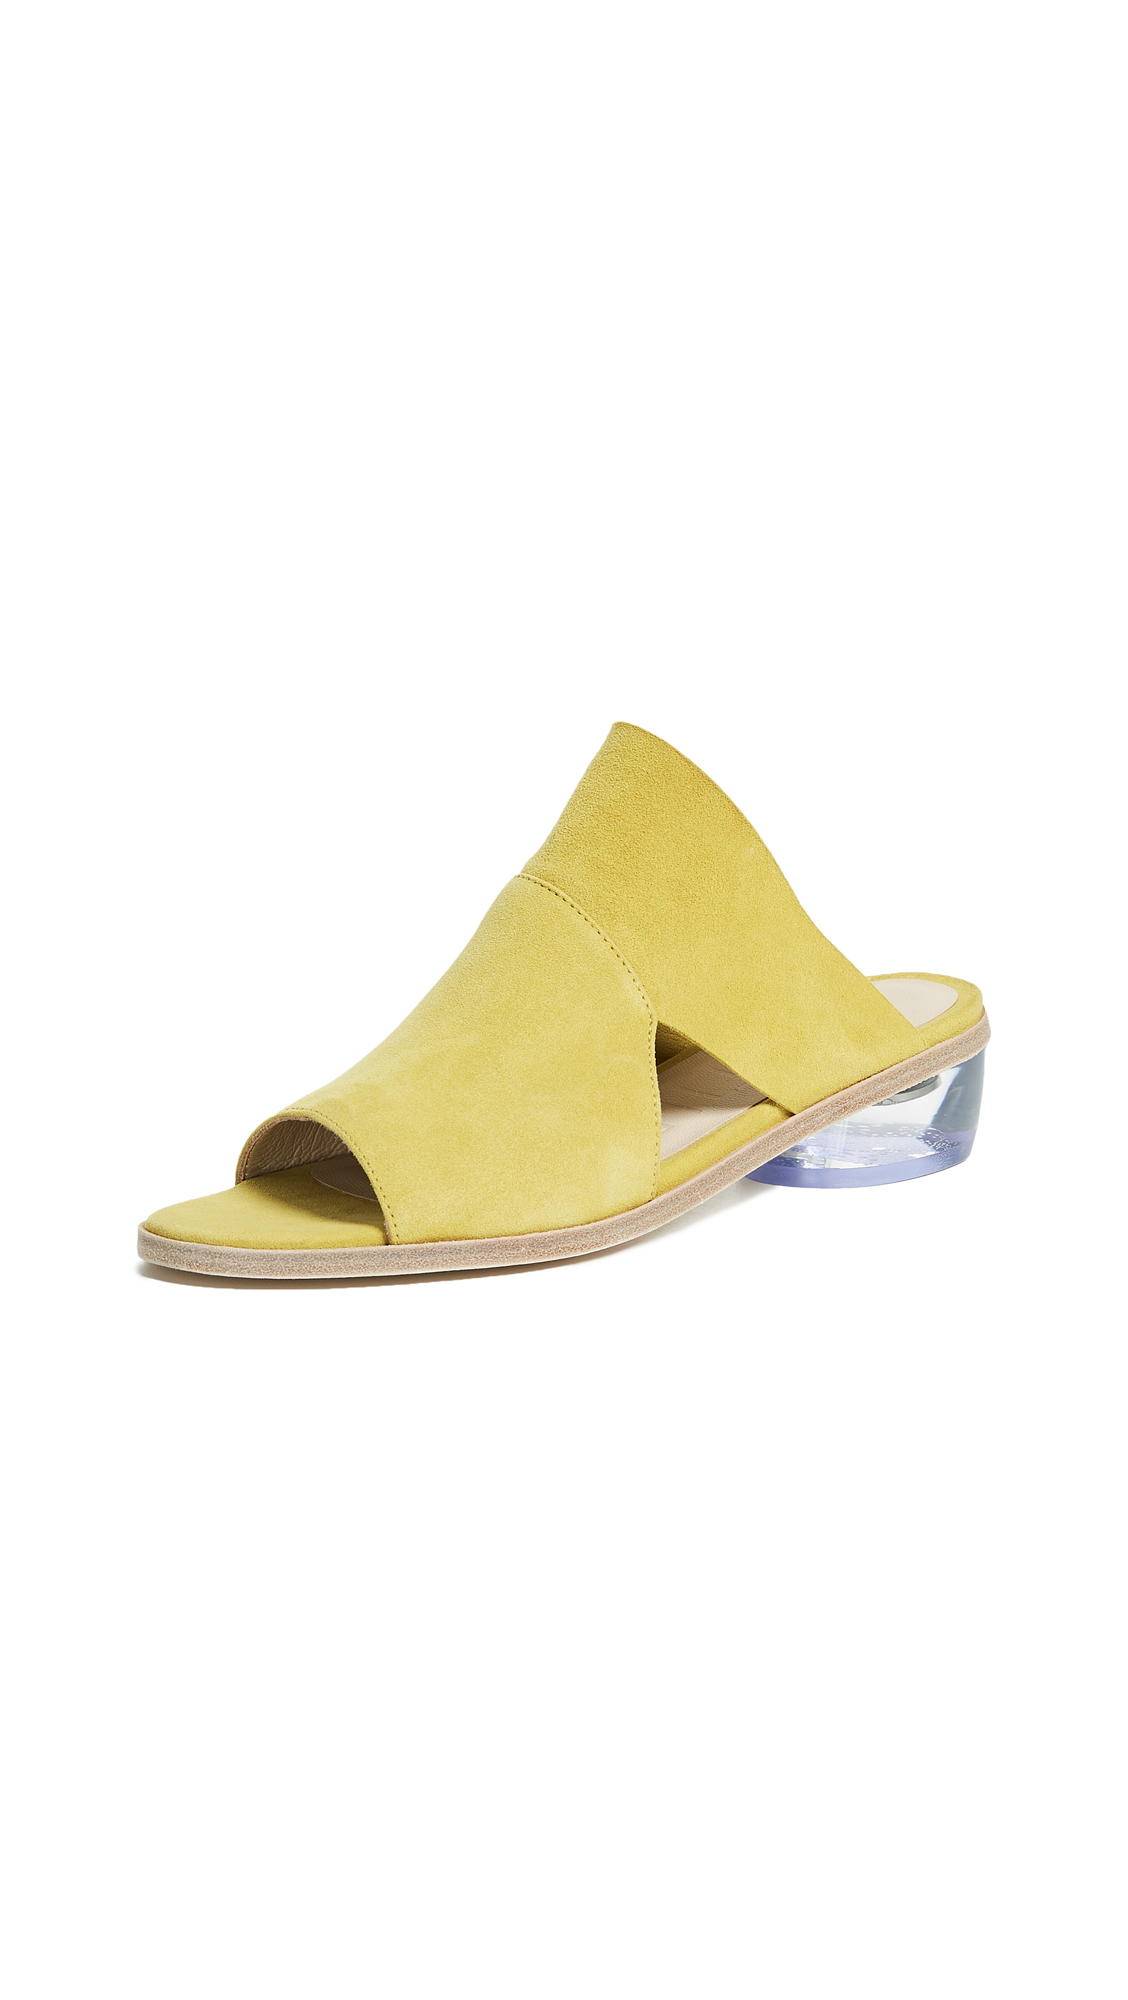 LD Tuttle The Stare Block Heel Sandals - Sulphur